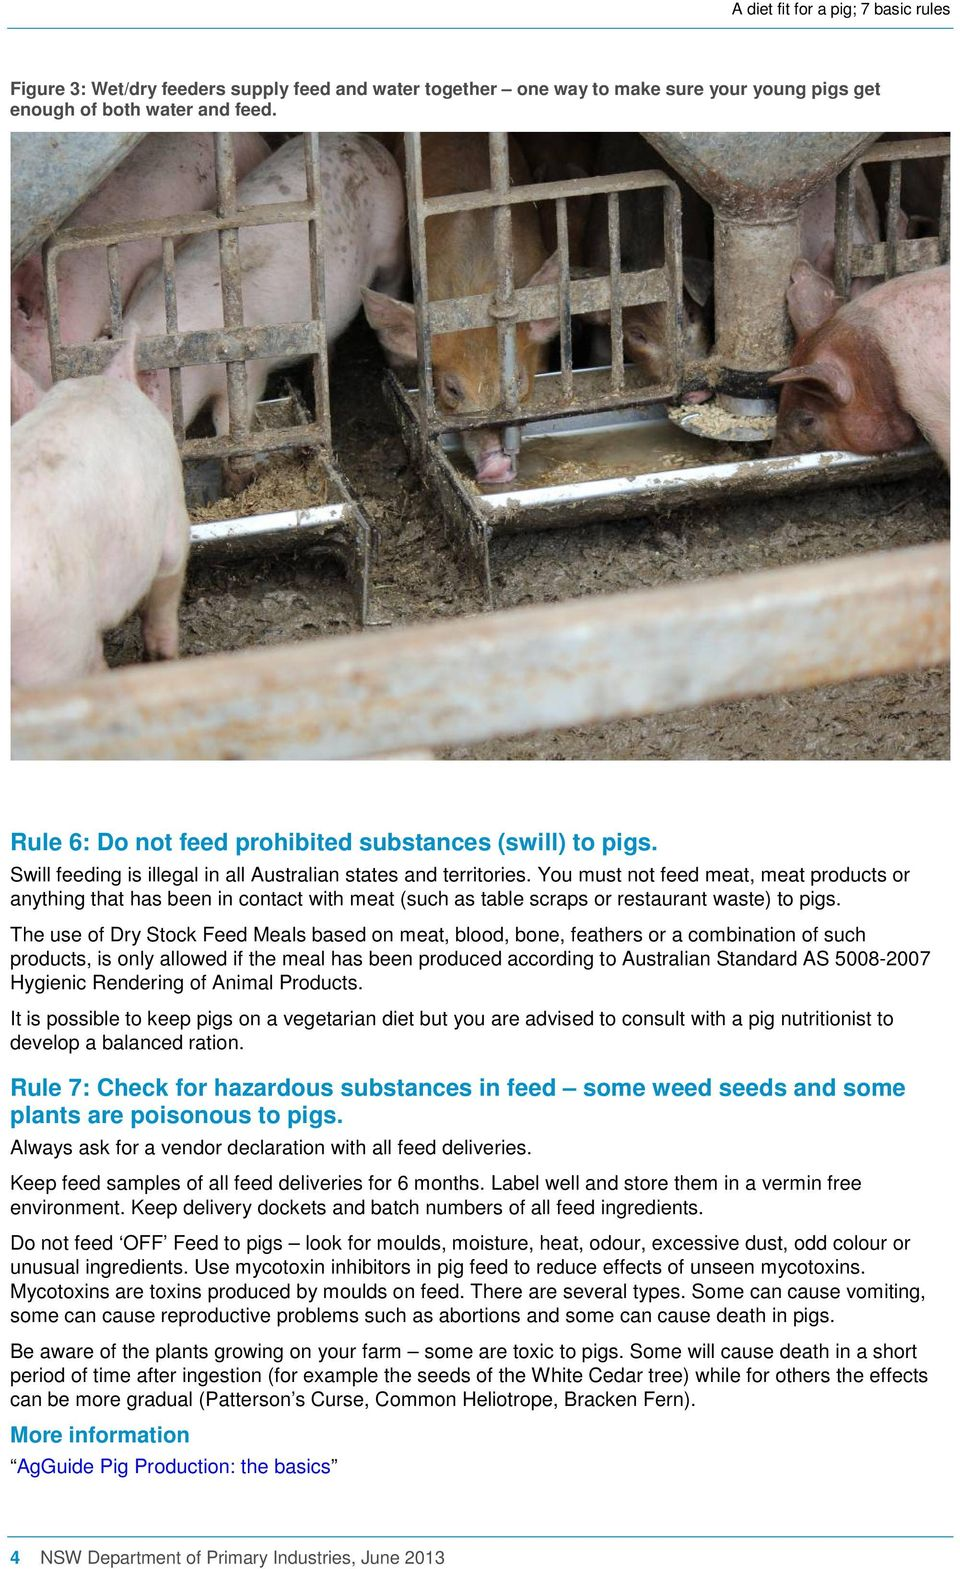 You must not feed meat, meat products or anything that has been in contact with meat (such as table scraps or restaurant waste) to pigs.